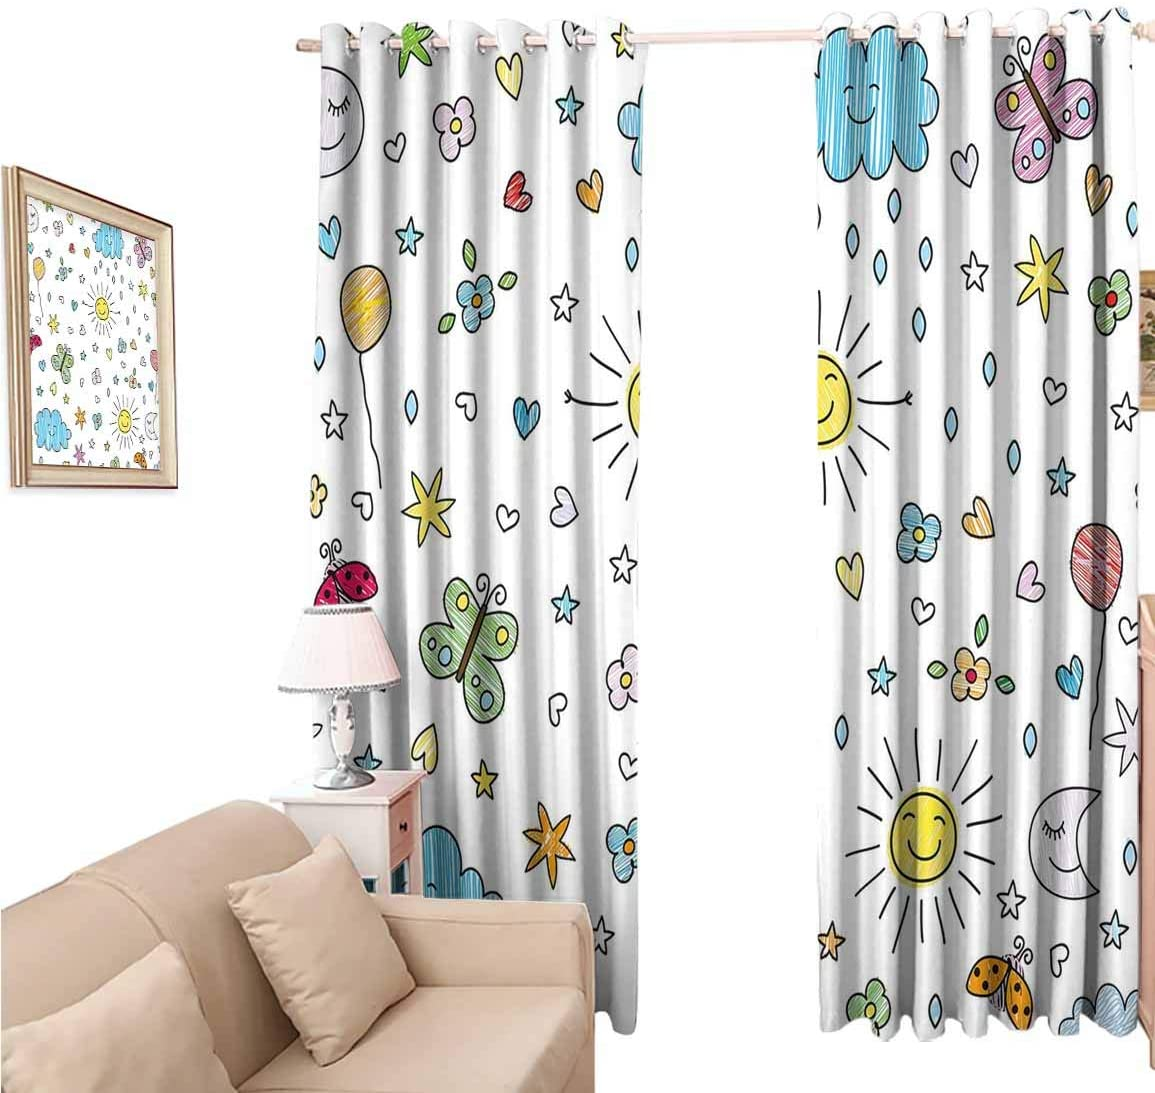 oobon Window Blackout Curtains Fabric, Nursery Various Weather Conditions Drawn Cartoon Style Sunny Rainy Cloudy Day and Night, 108 Inches Long for Nursery Room, 96x108 inch